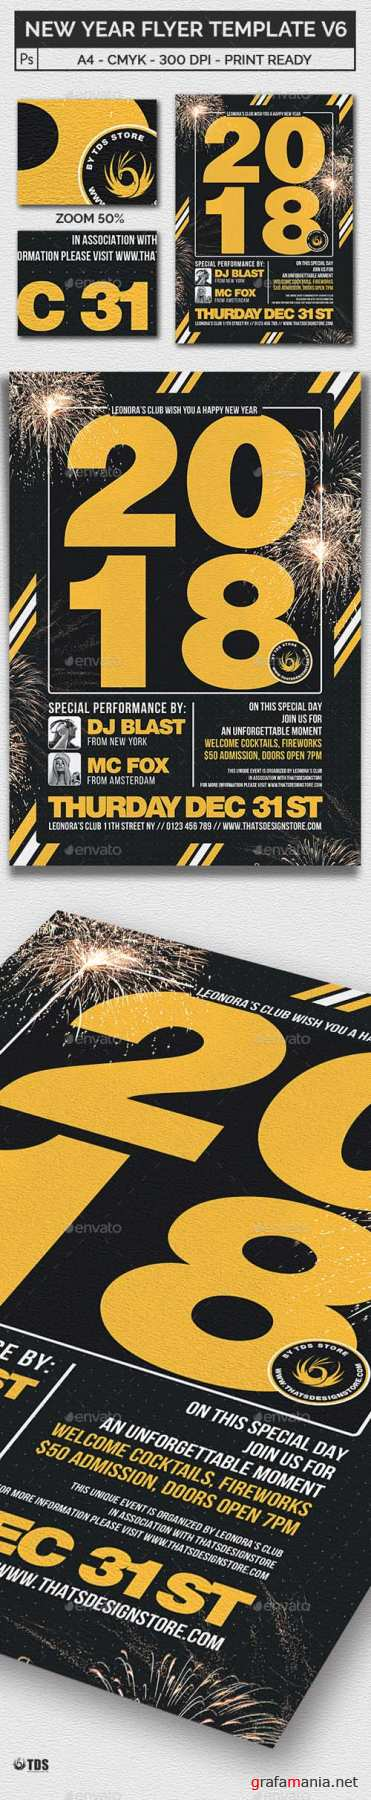 New Year Flyer Template V6 20898759